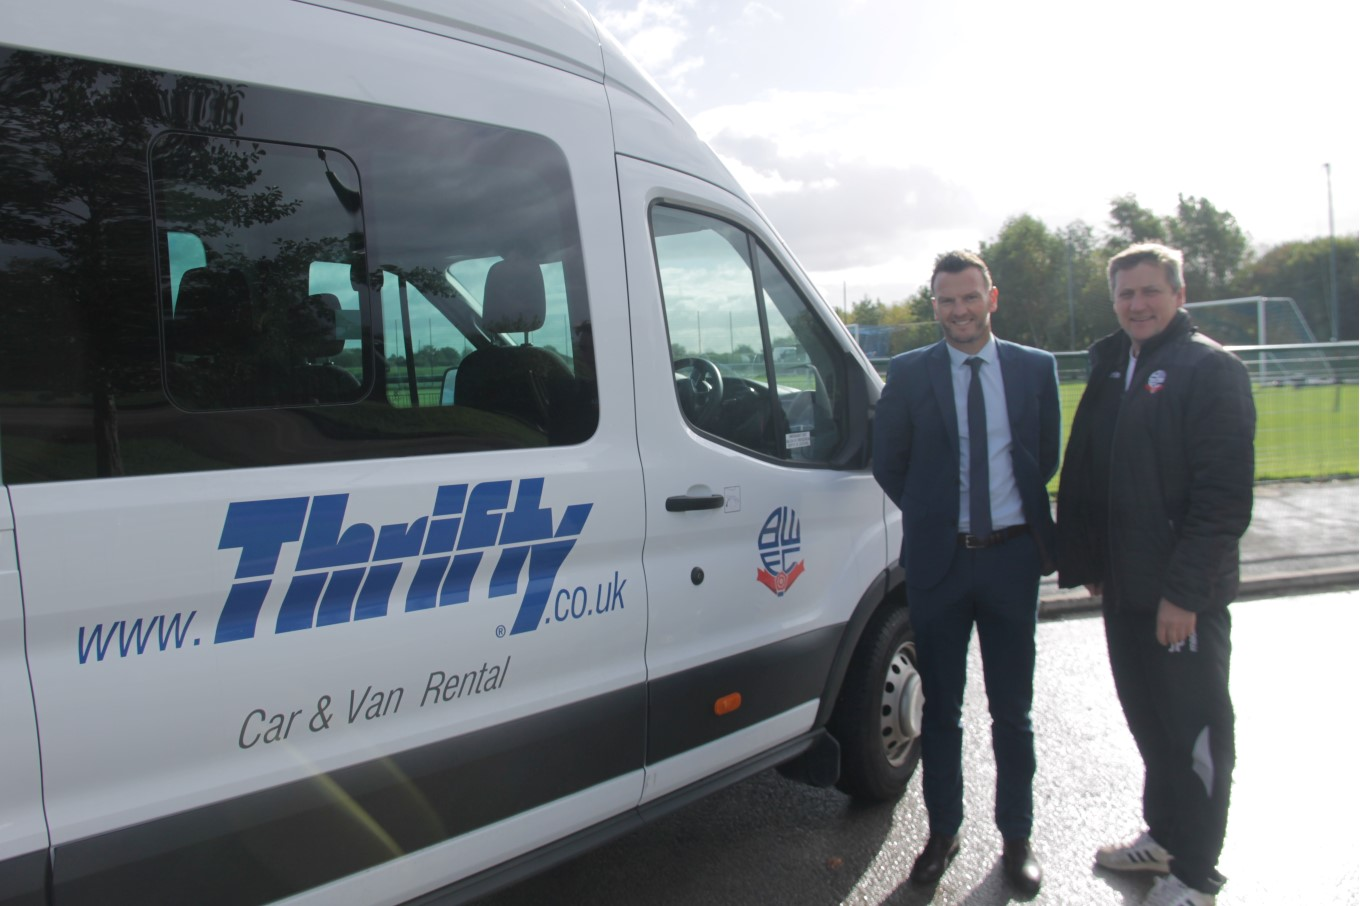 Thrifty Car and Van Rental Belfast, Belfast, United Kingdom. likes · 2 were here. Book and pre pay online for your short term car hire or van rental.